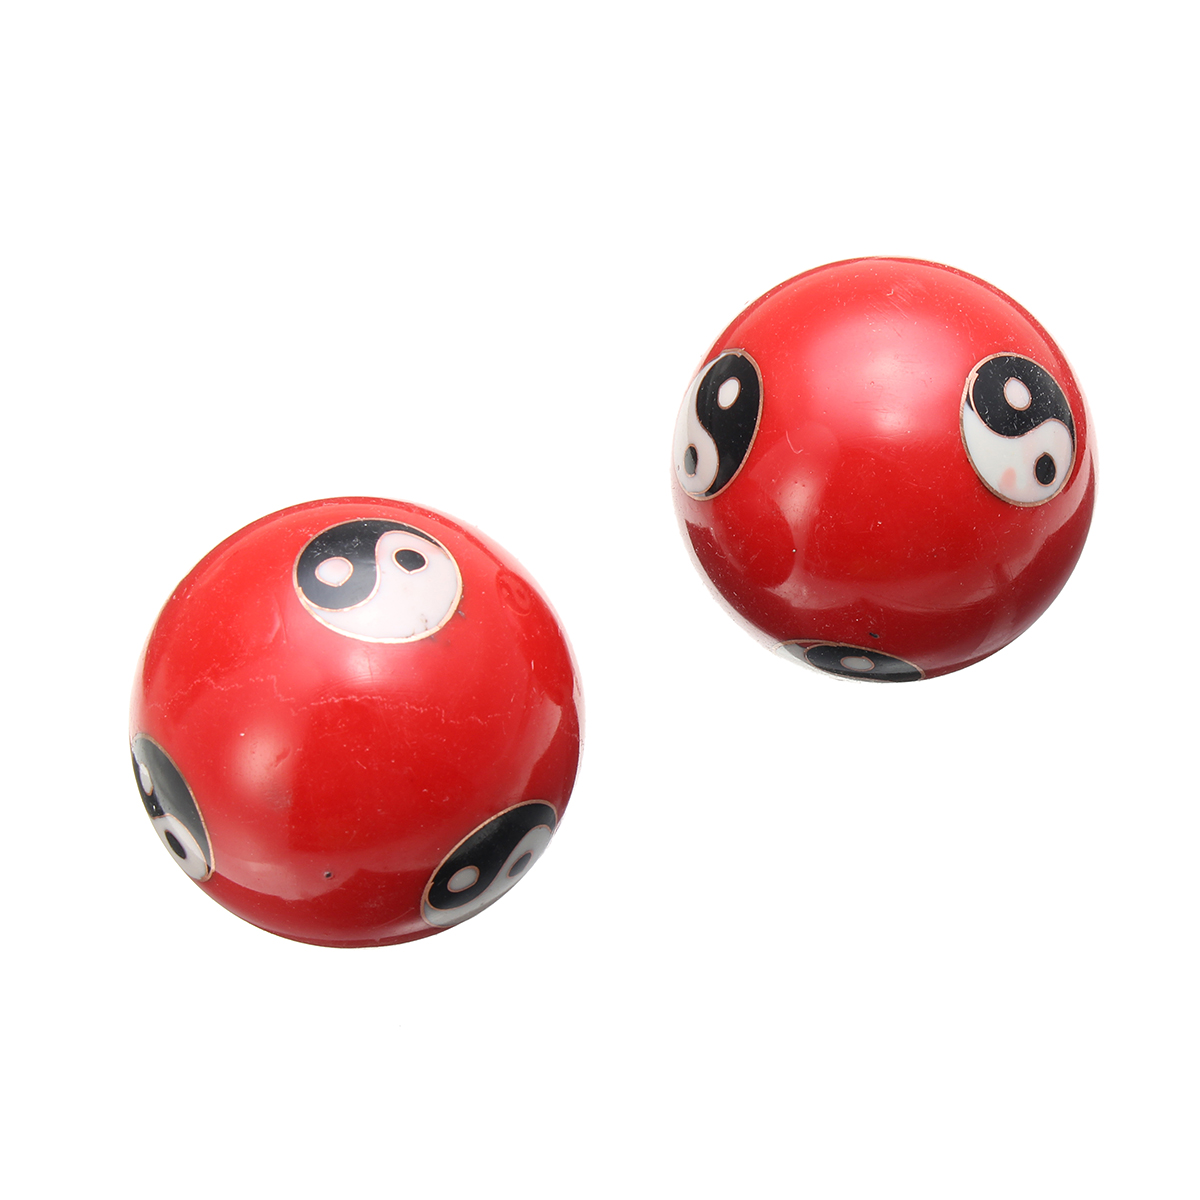 2pcs 42mm Chinese Health Yin Yang Therapy Tools Exercise Stress Relaxation Massage Baoding Ball